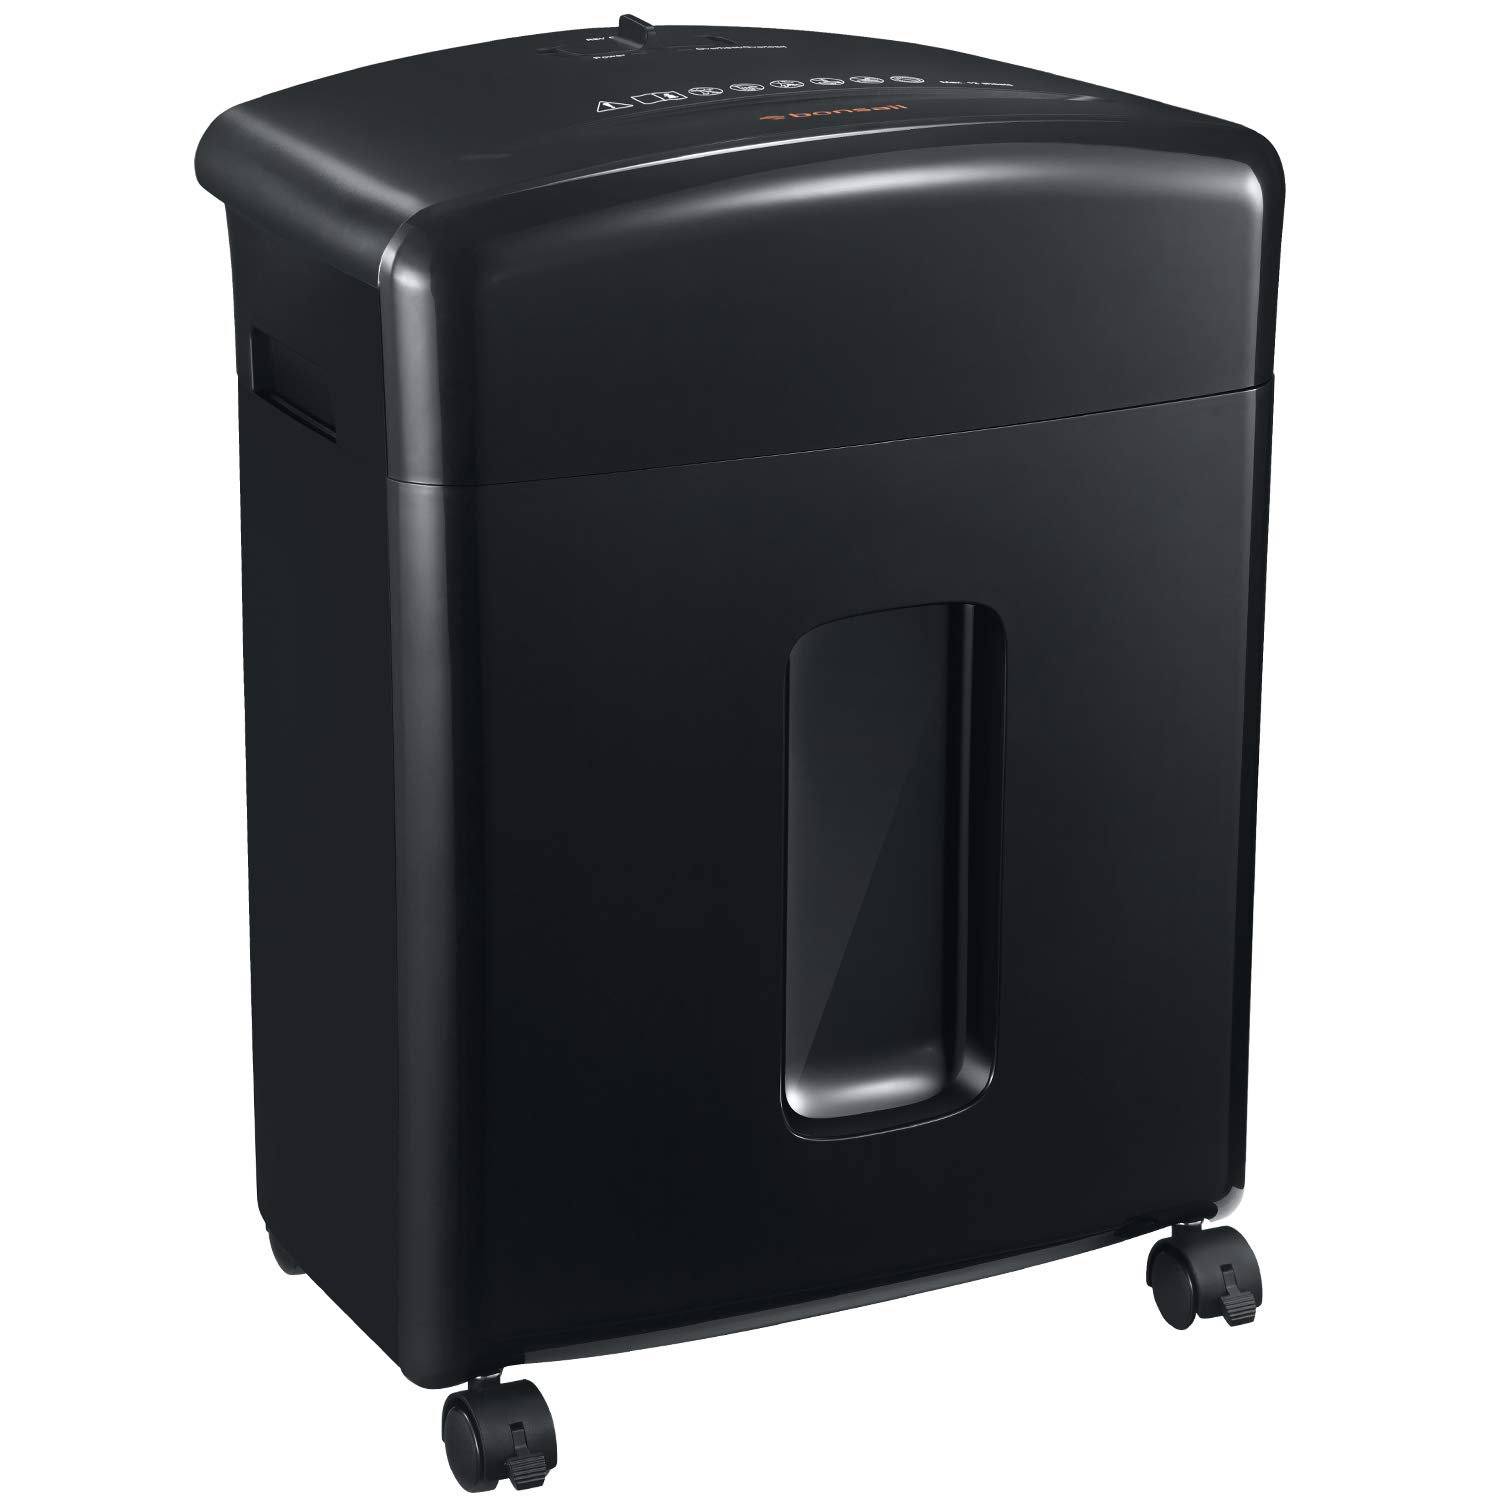 Bonsaii 12-Sheet Cross-Cut Paper, CD/DVD, and Credit Card Shredder with 3.5-gallons Pullout Basket, Black (C220-A) by bonsaii (Image #8)